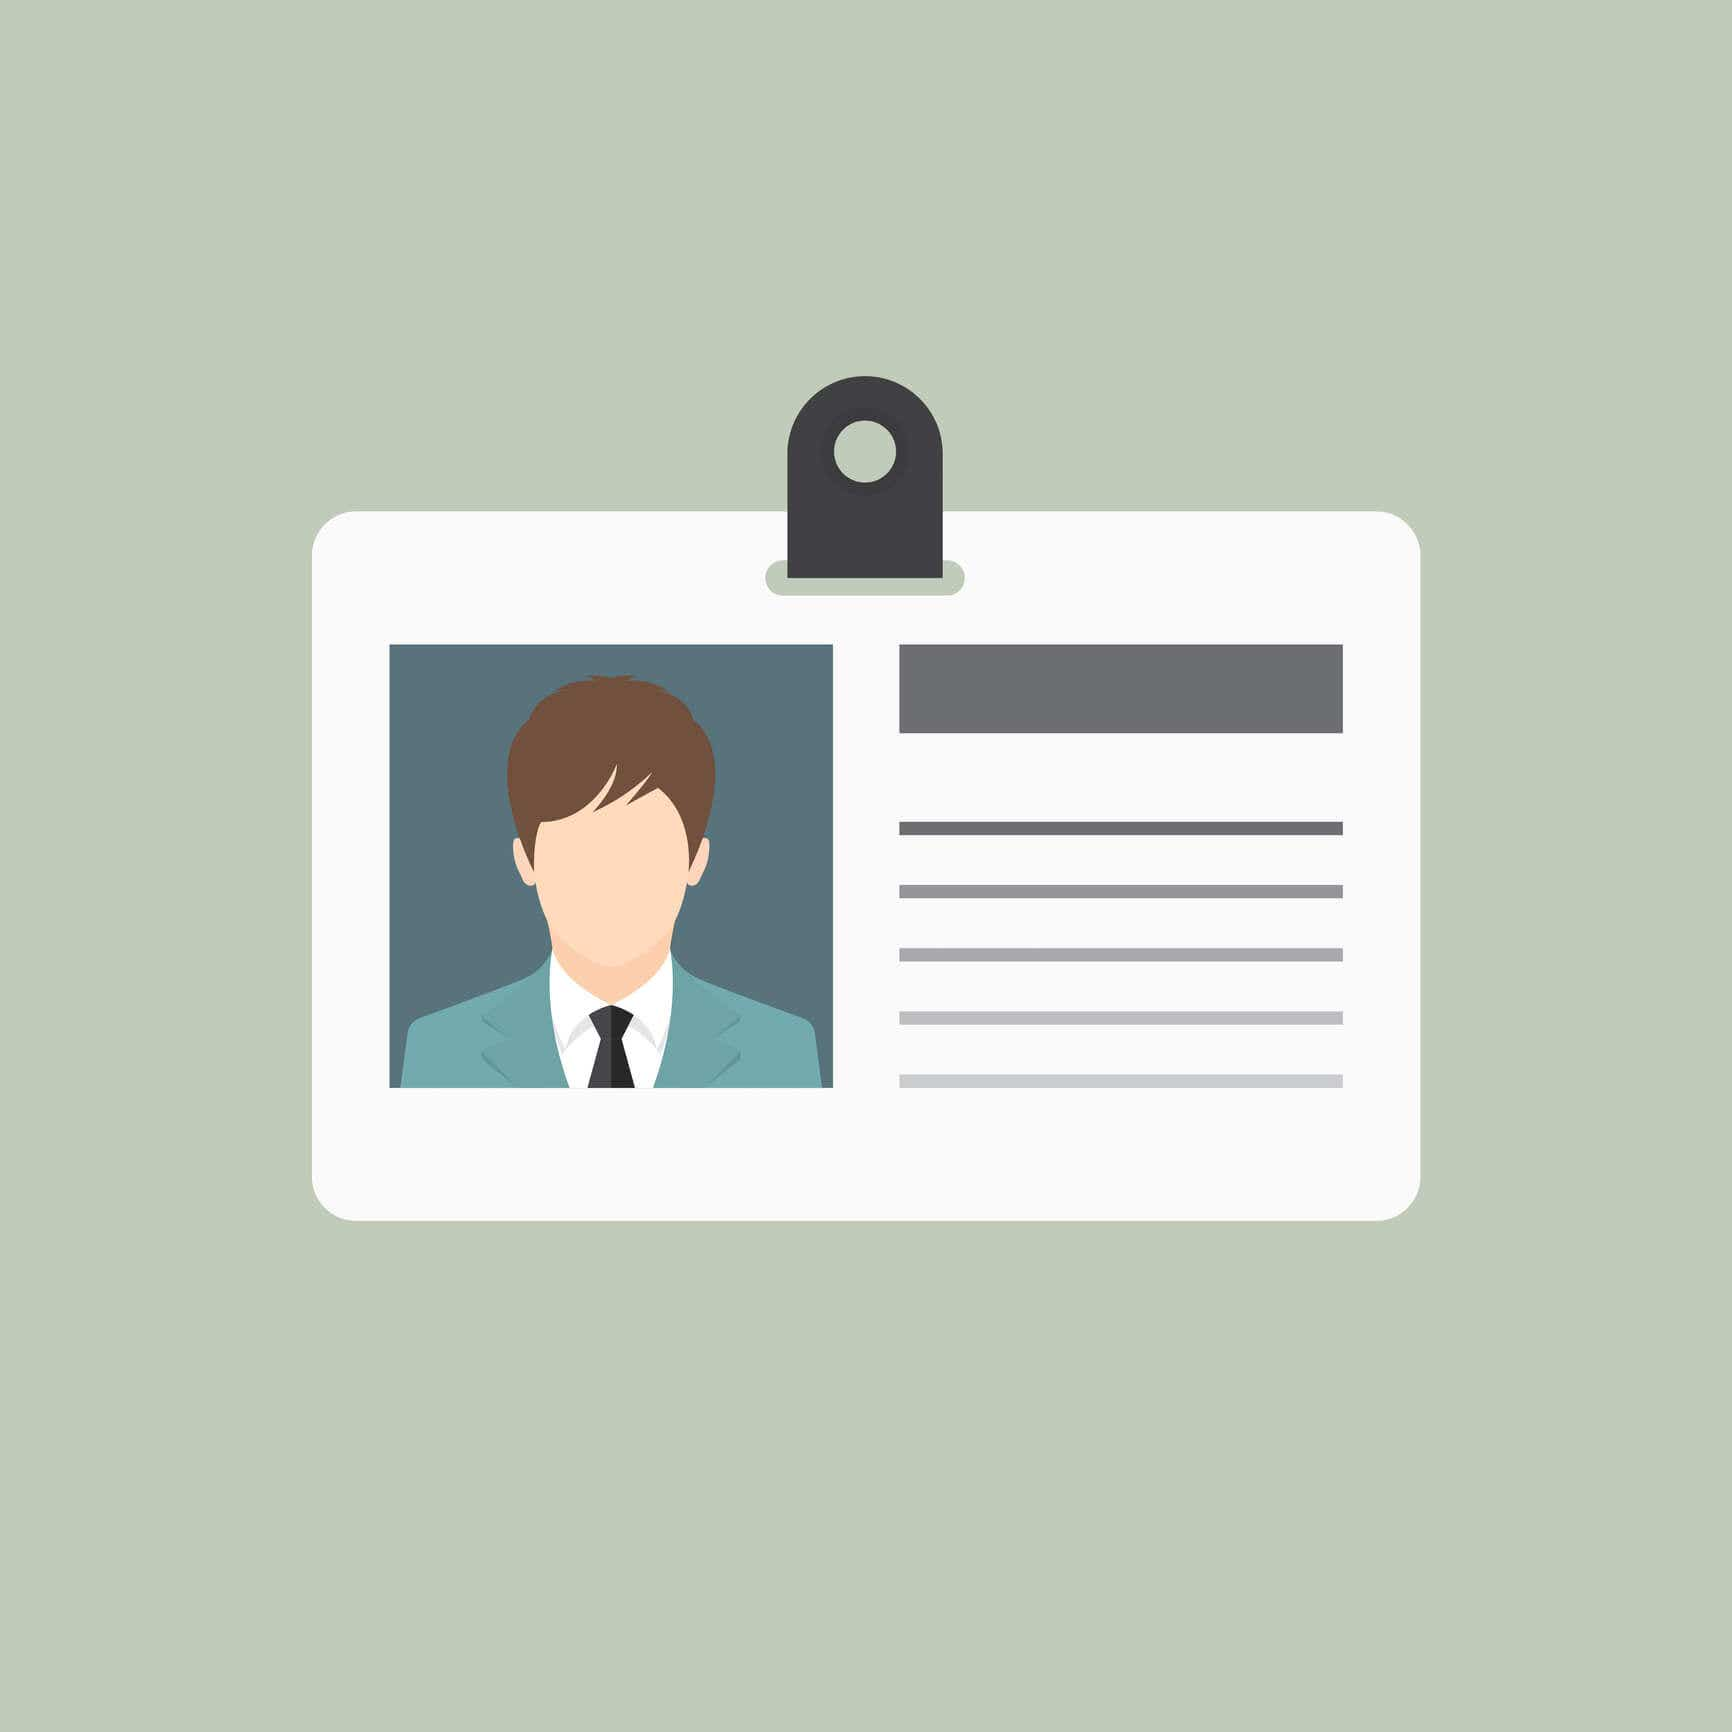 lower risk as sole proprietor by getting an Employee Identification Number